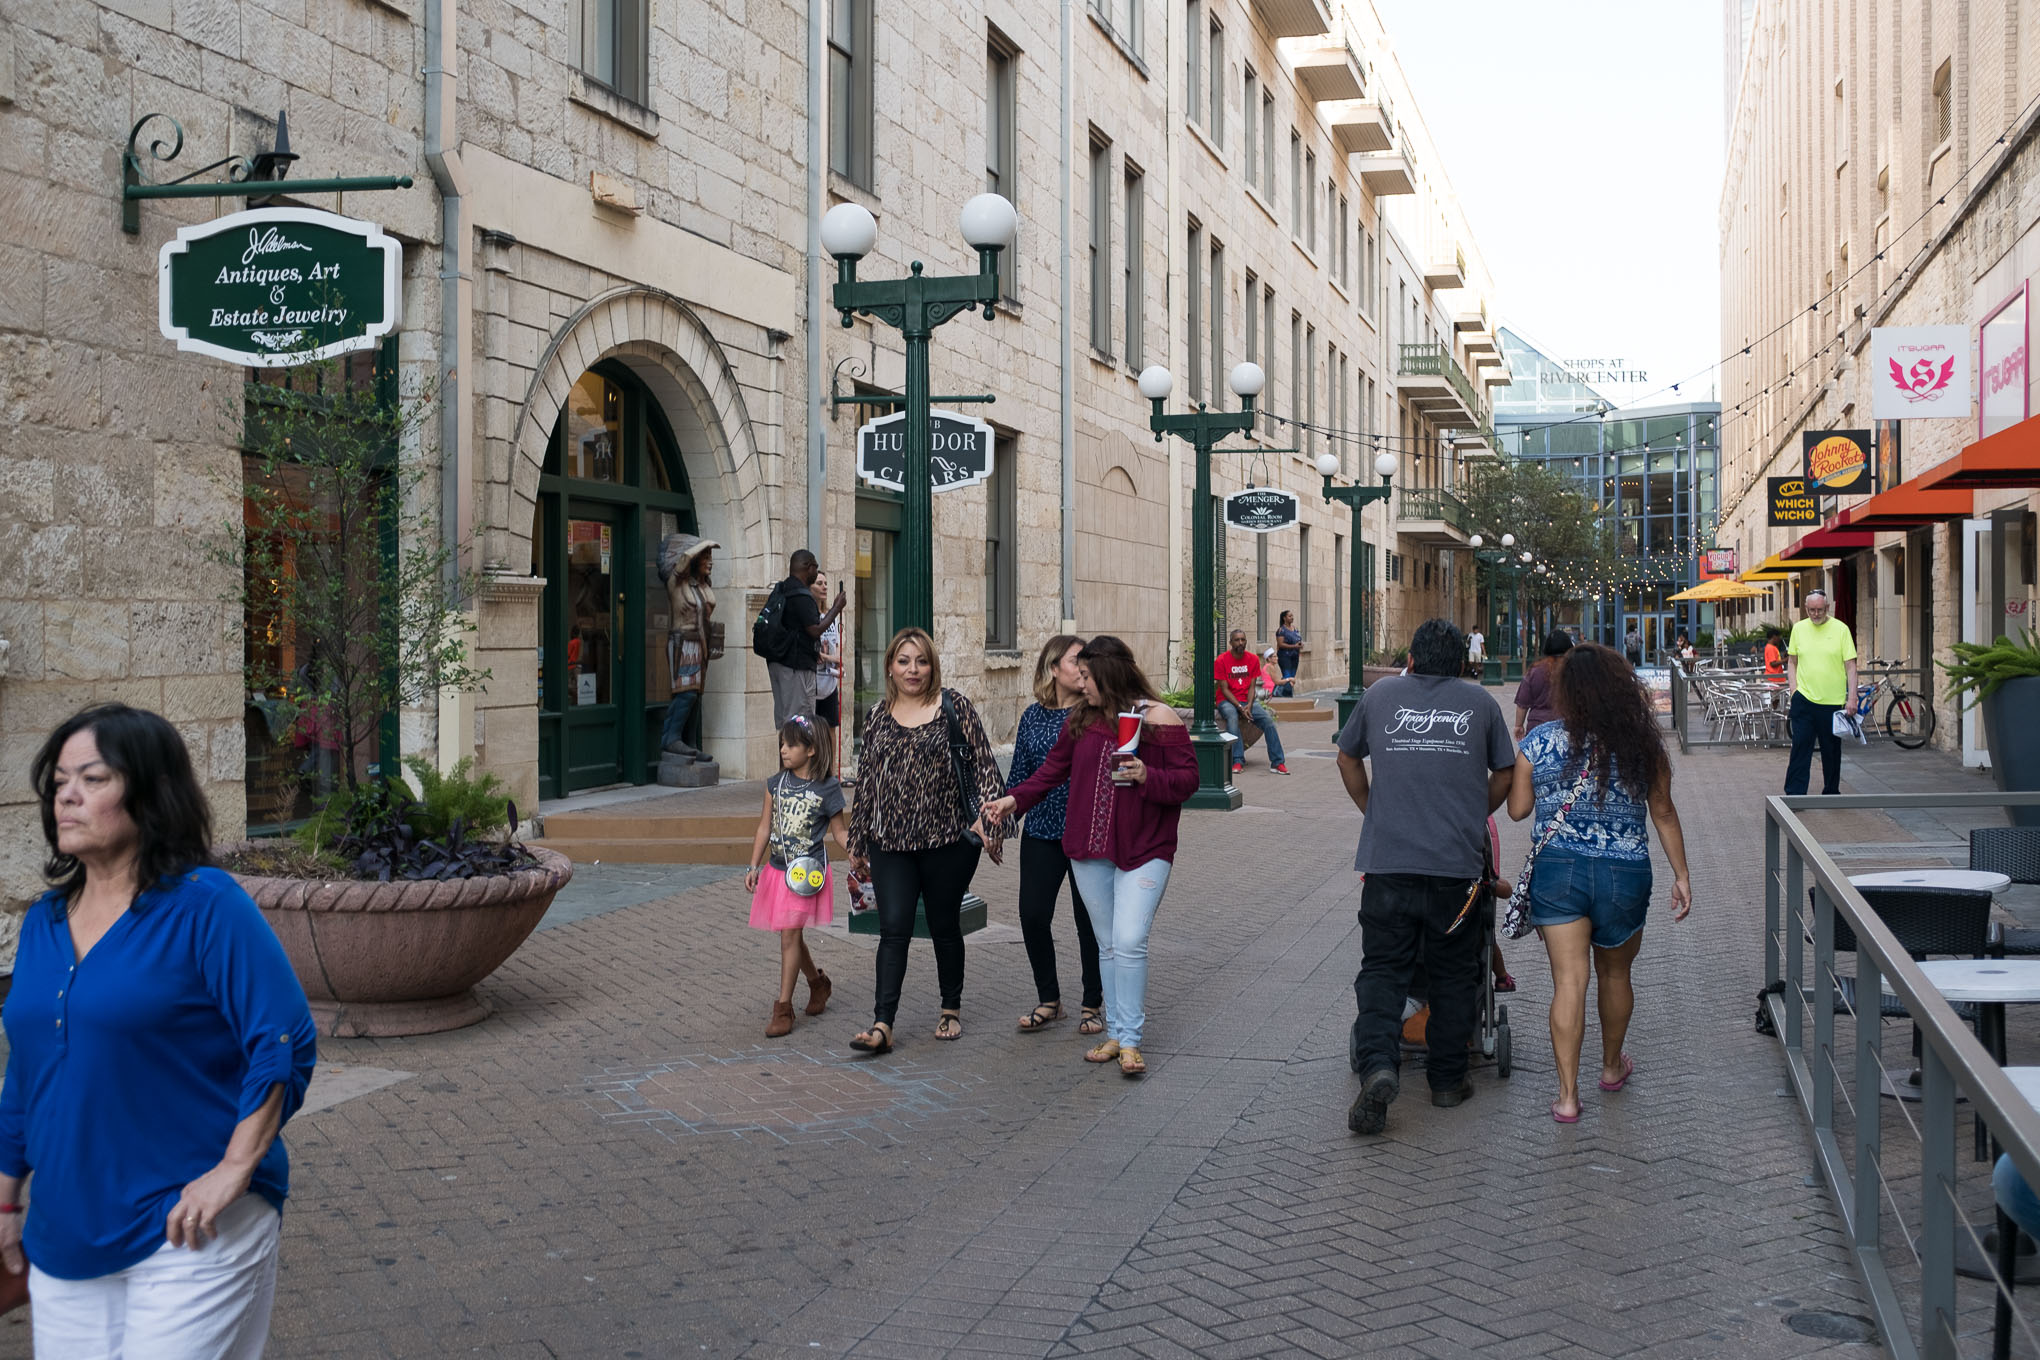 Customers walk outside the Shops at Rivercenter in downtown San Antonio.